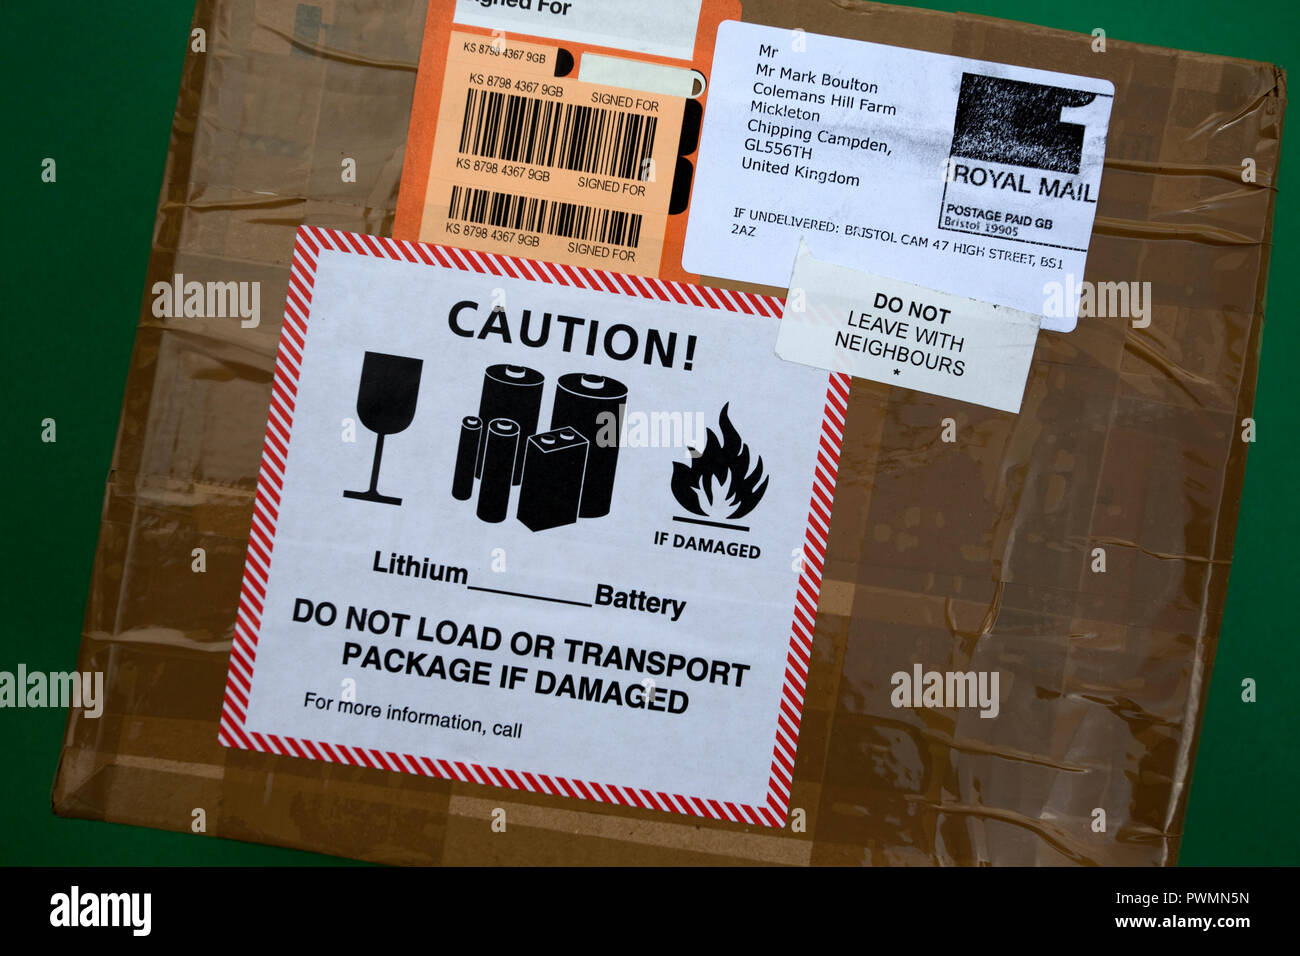 Caution Lithium battery label on postal package UK - Stock Image